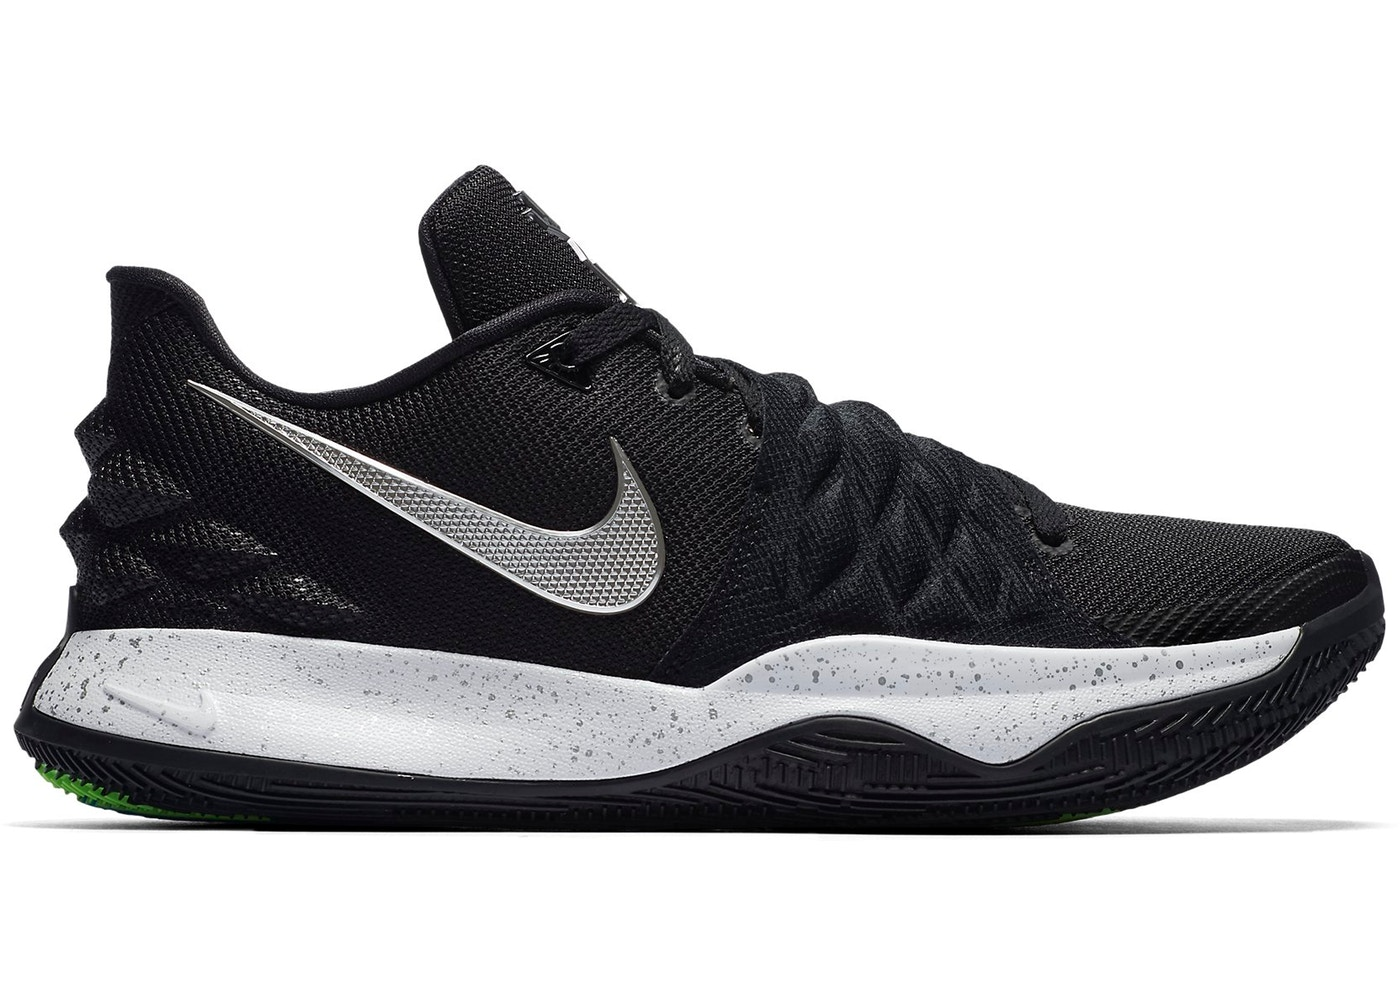 6fc4e18b9305 Sell. or Ask. Size 9. View All Bids. Kyrie Low 1 Black Metallic Silver